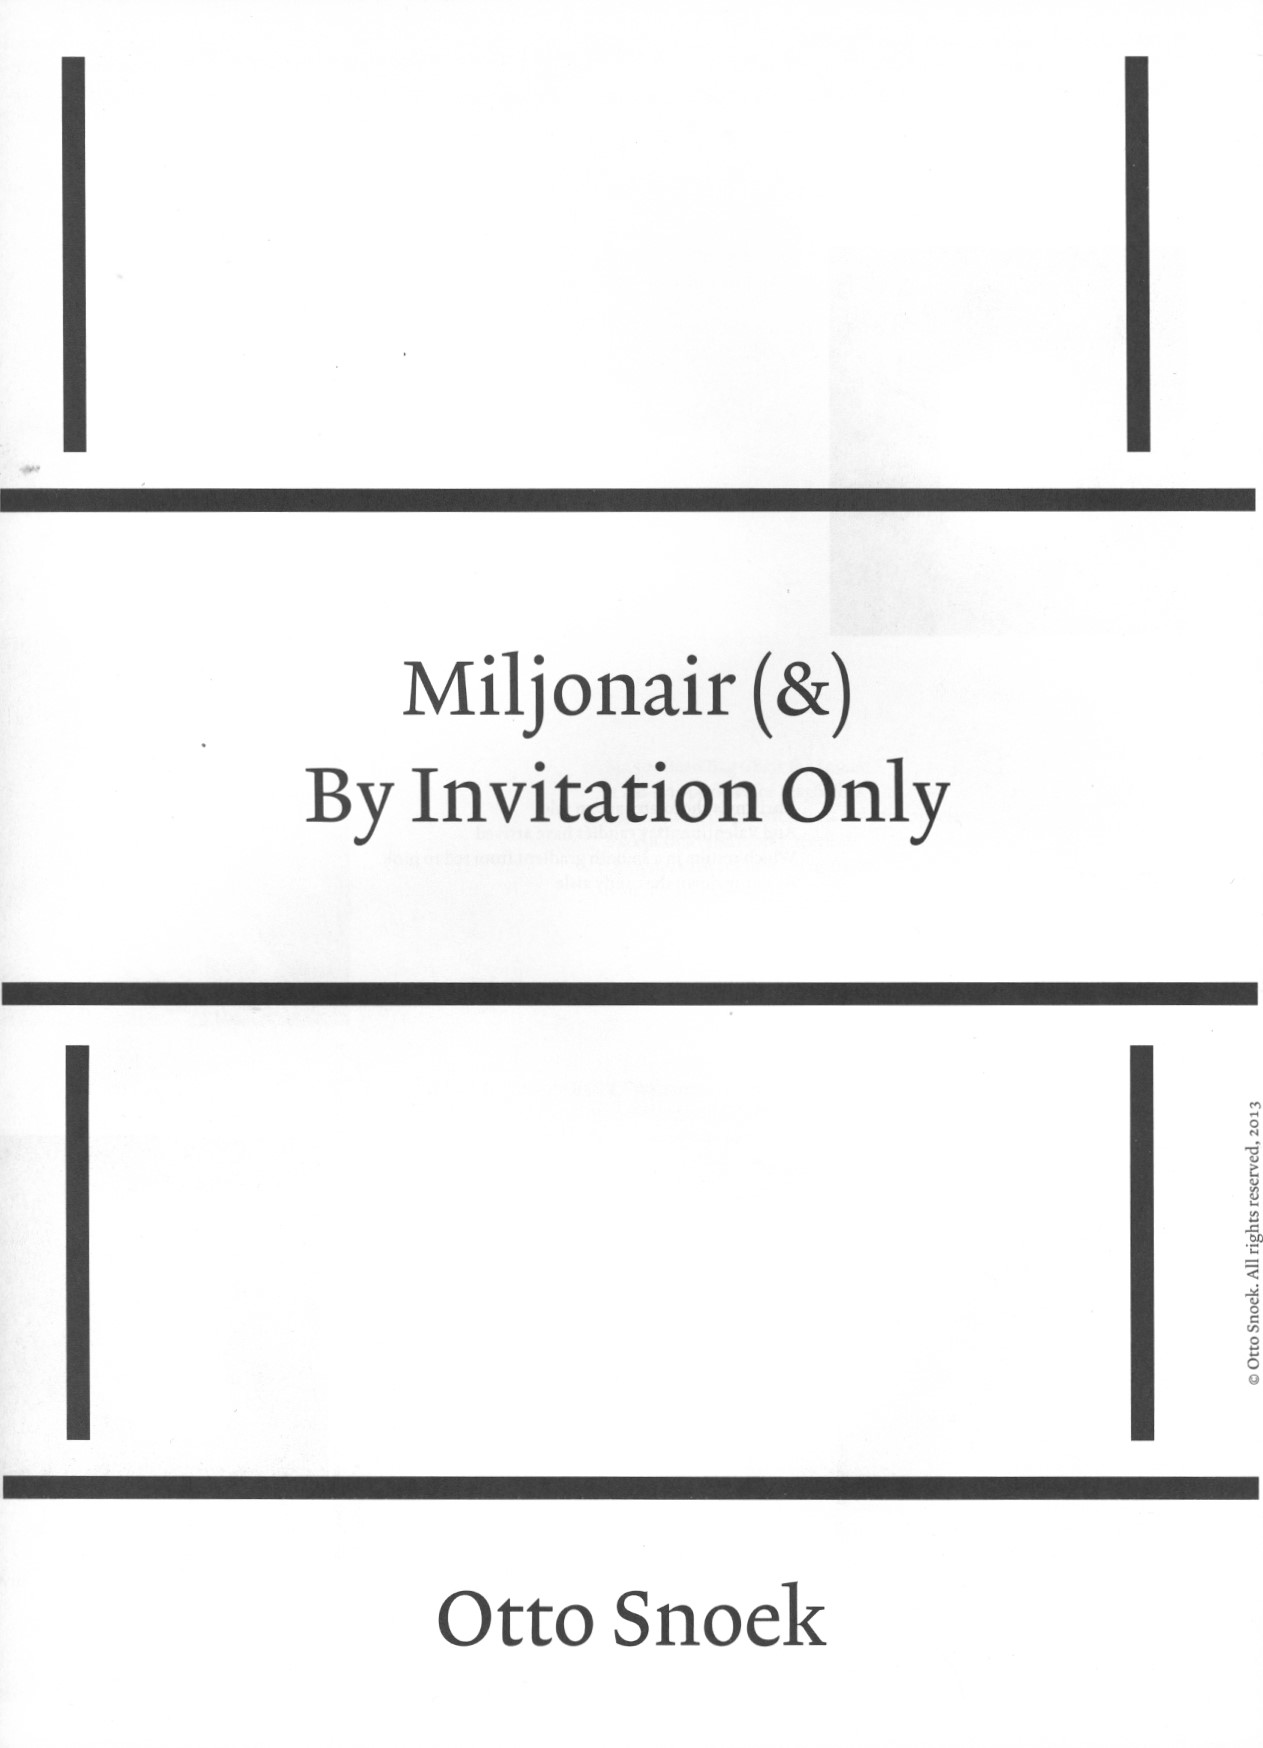 MILJONAIR (&) BY INVITATION ONLY | PHOTOGRAPHY OTTO SNOEK | 2011 | VERITIES MAGAZINE VOL.3 | 2013